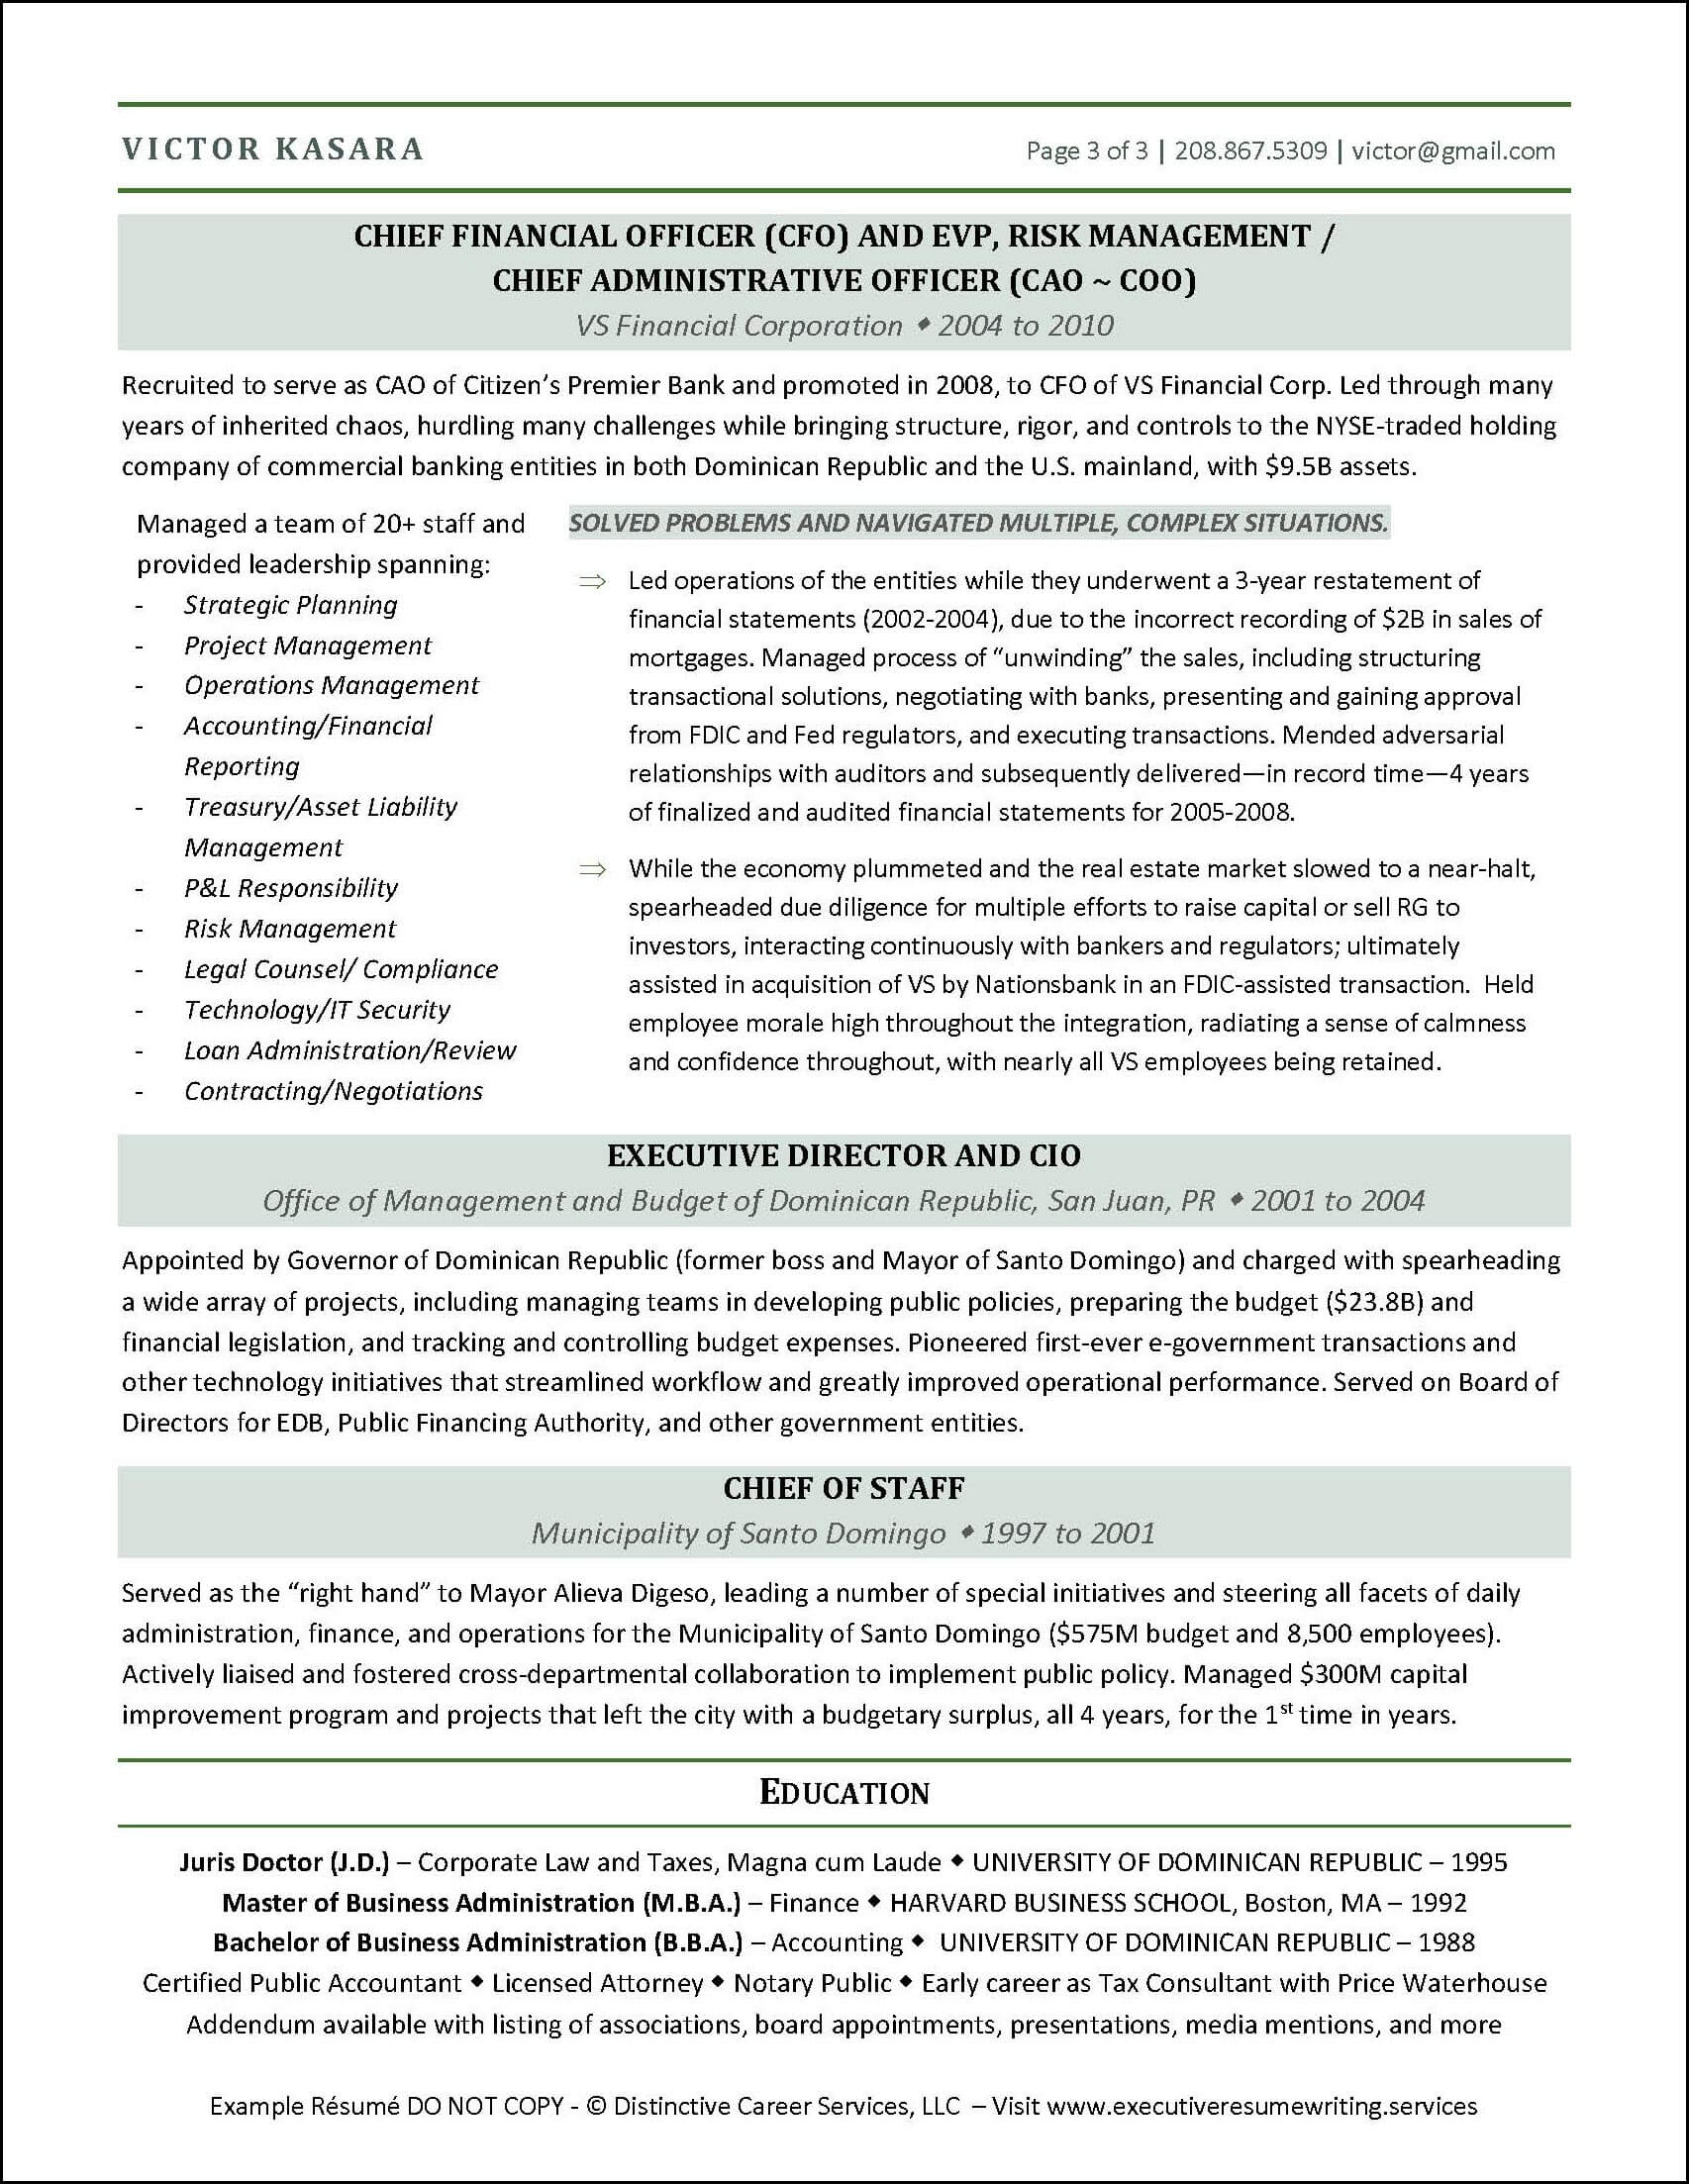 Example CFO Executive Resume pg 2